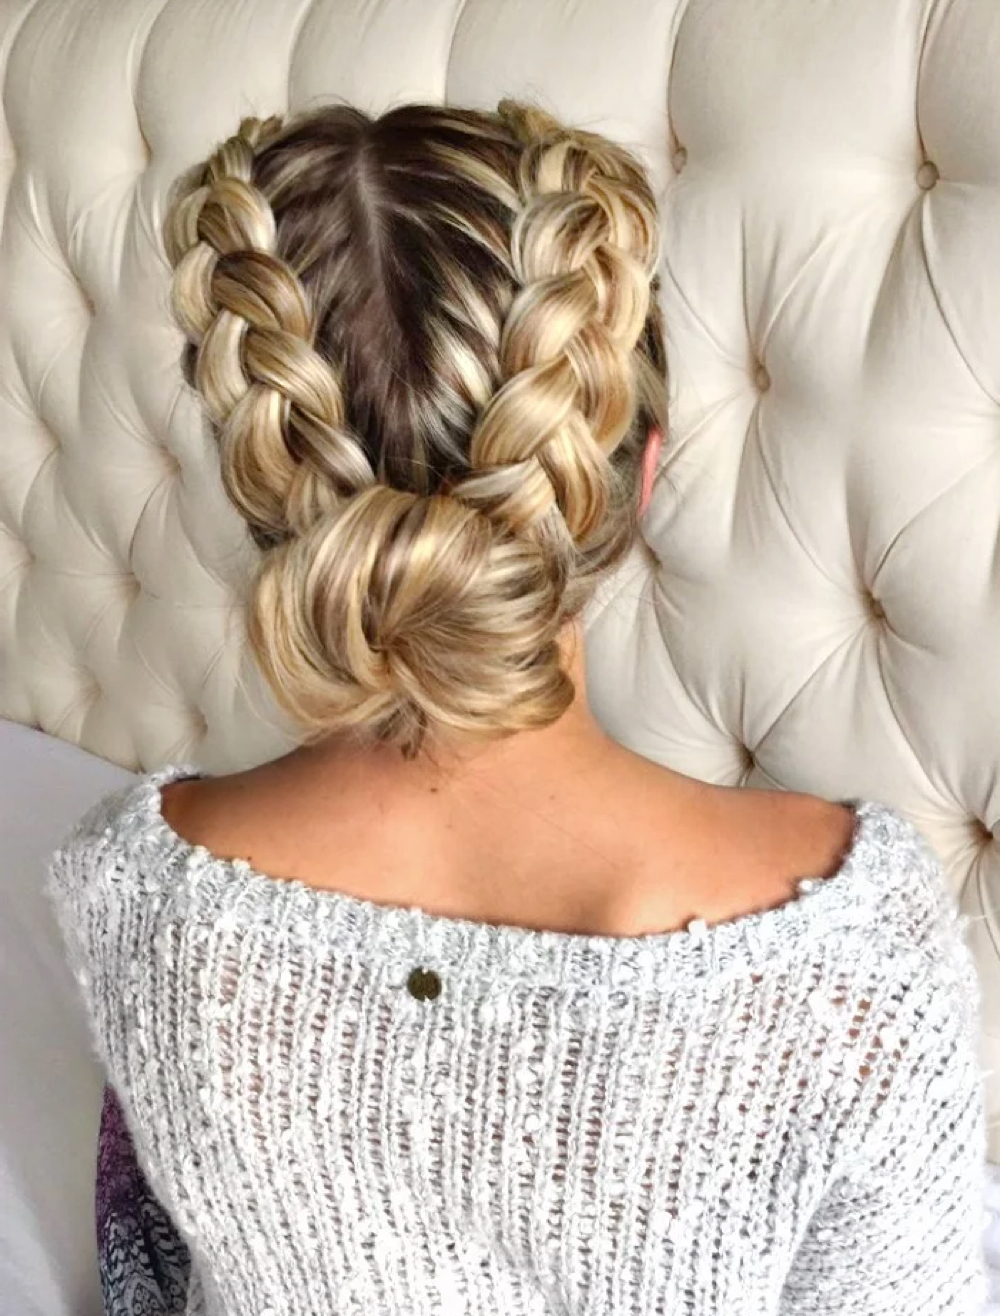 29 Gorgeous Braided Updo Ideas For 2019 In Widely Used Big Bun Braided Hairstyles (View 9 of 20)